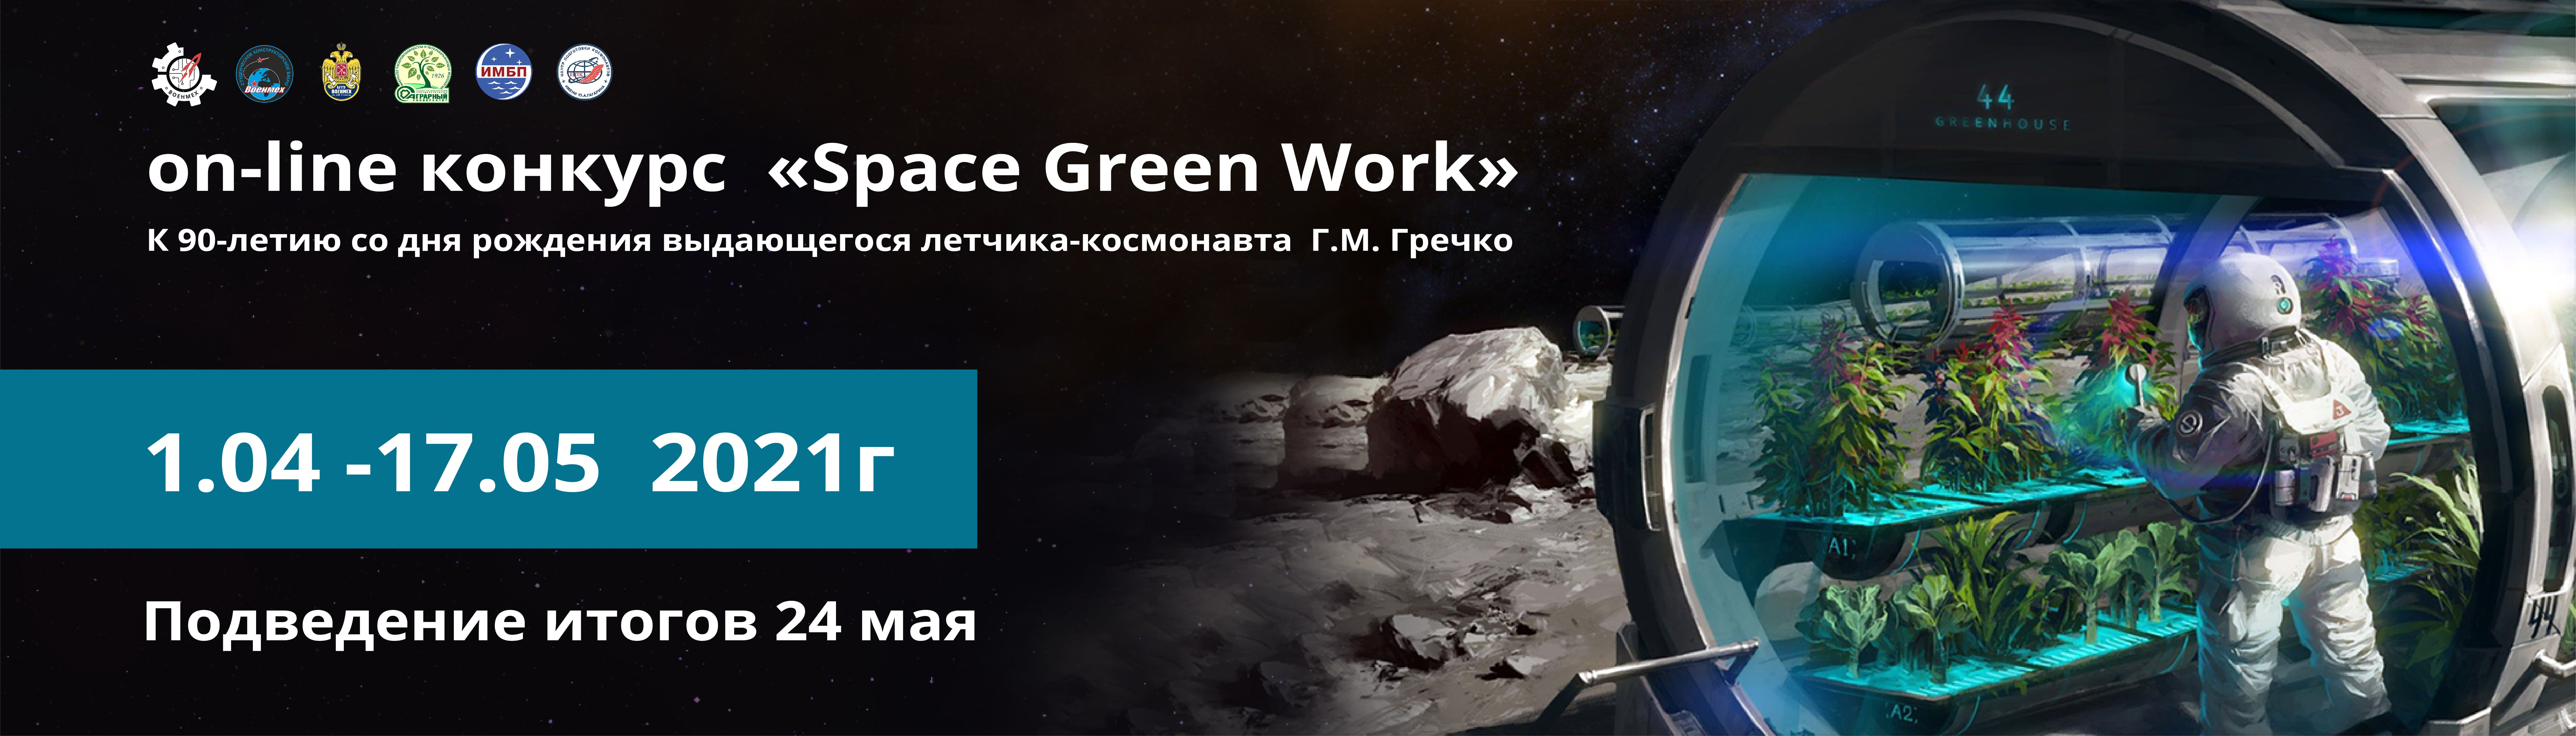 space green work 2021